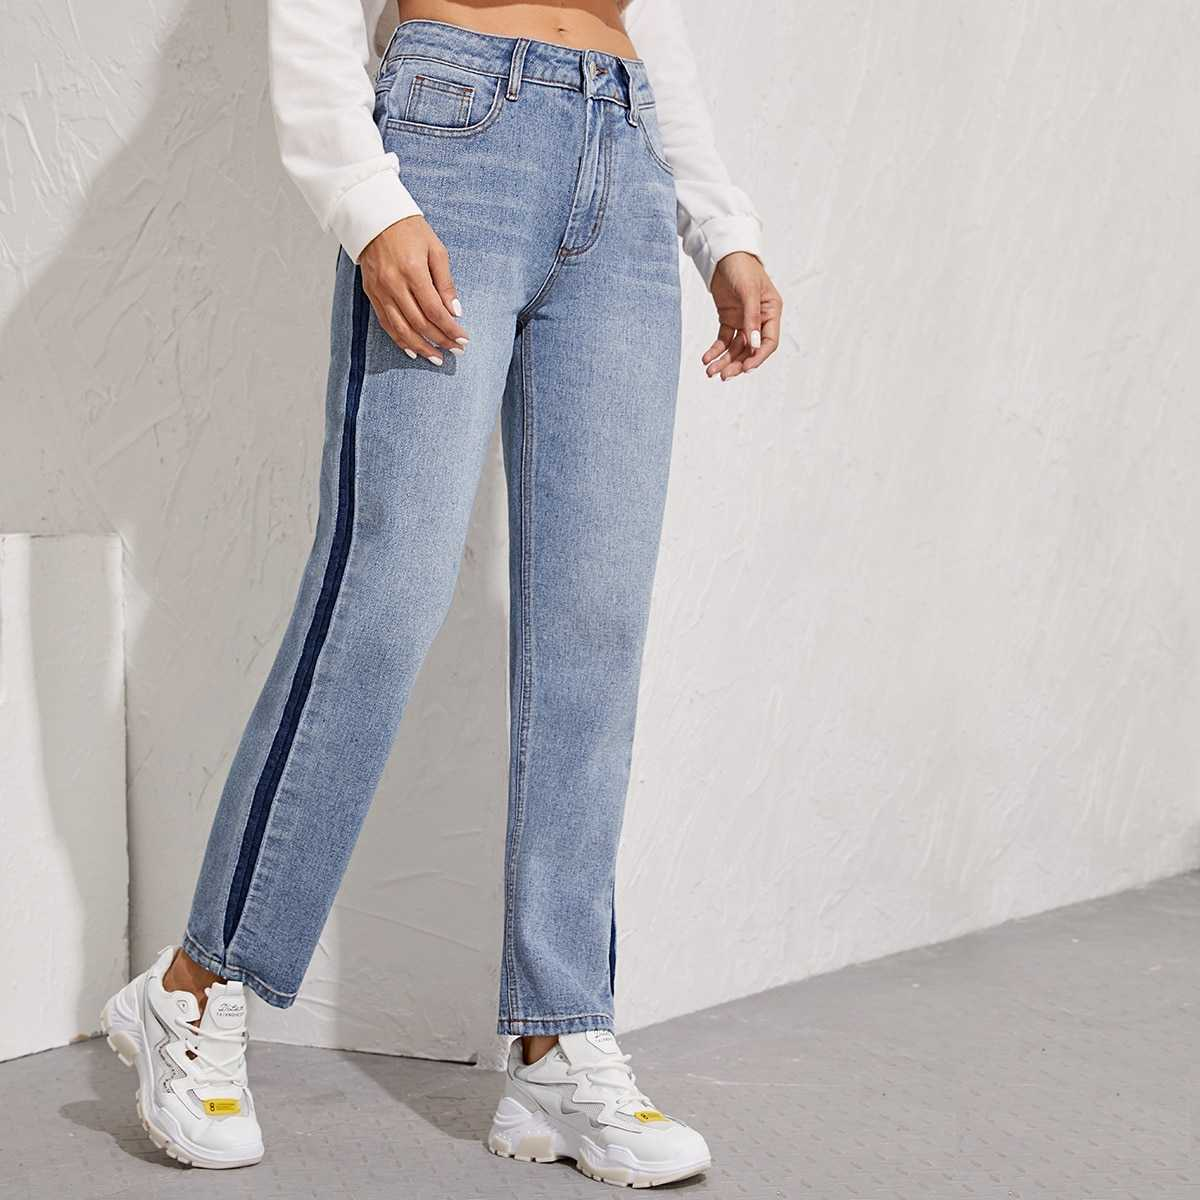 Contrast Sideseam Straight Leg Jeans in Blue Pastel by ROMWE on GOOFASH